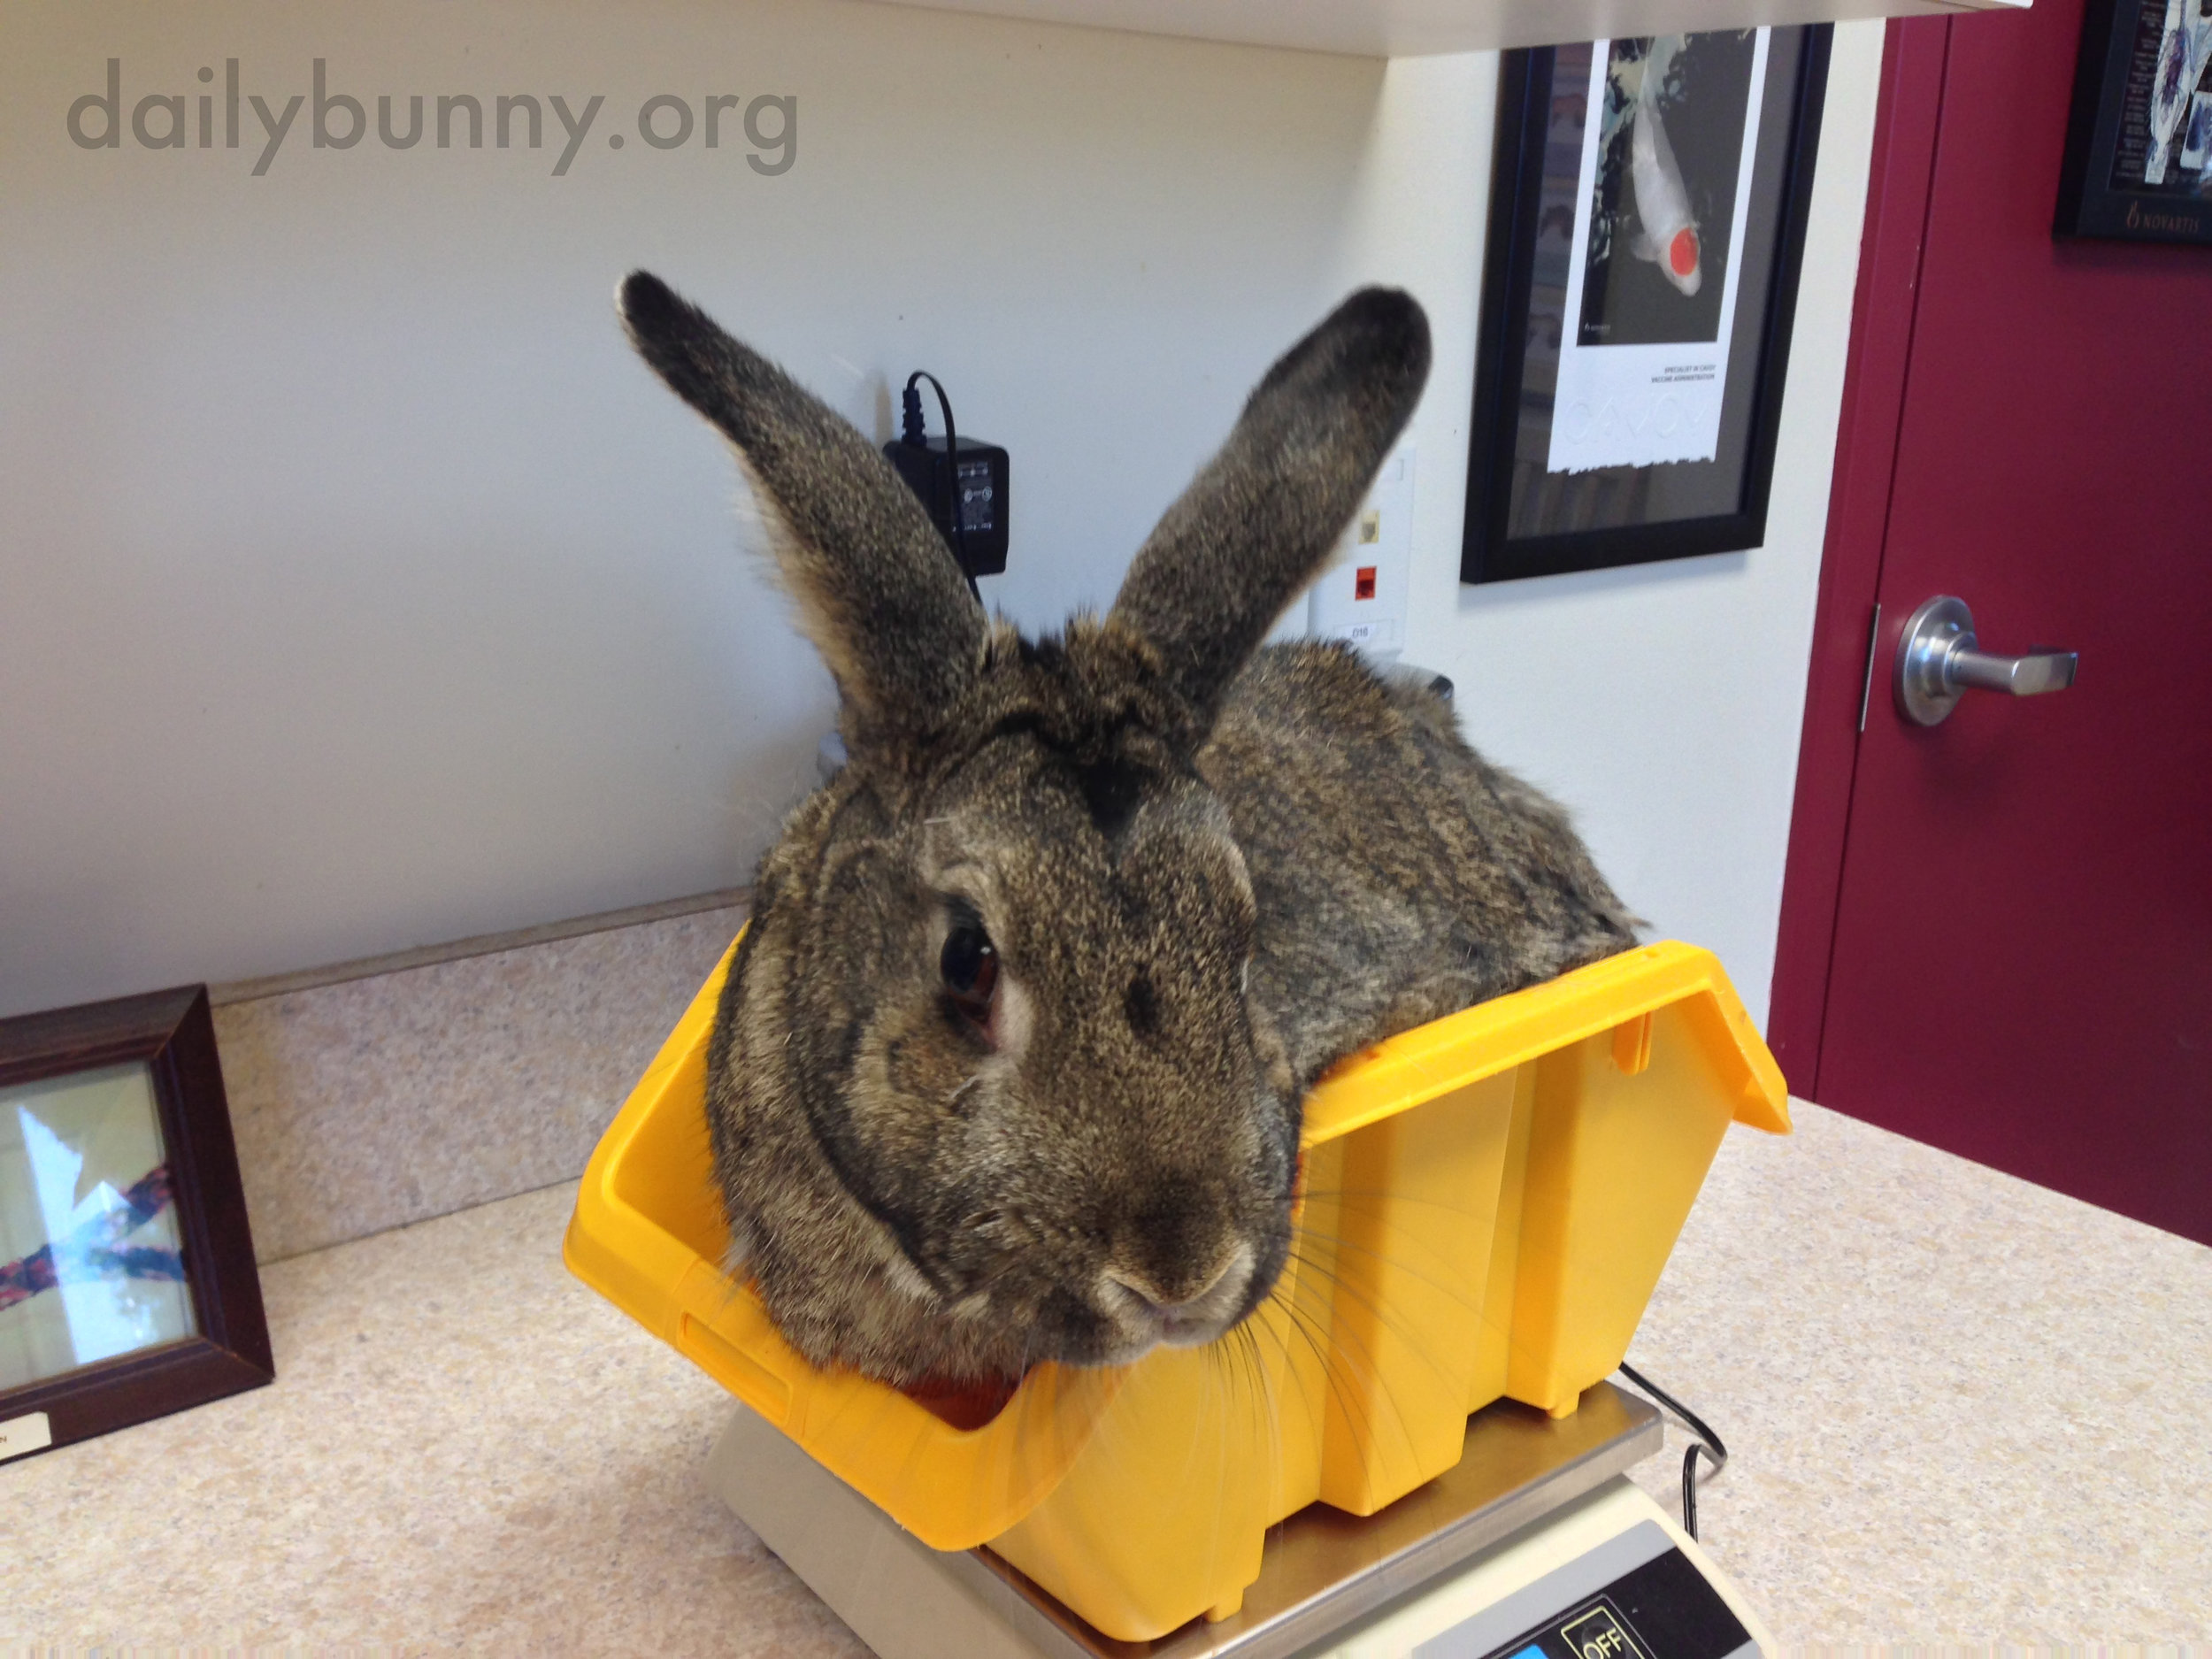 Bunny Looks a Little Shy About Being Weighed